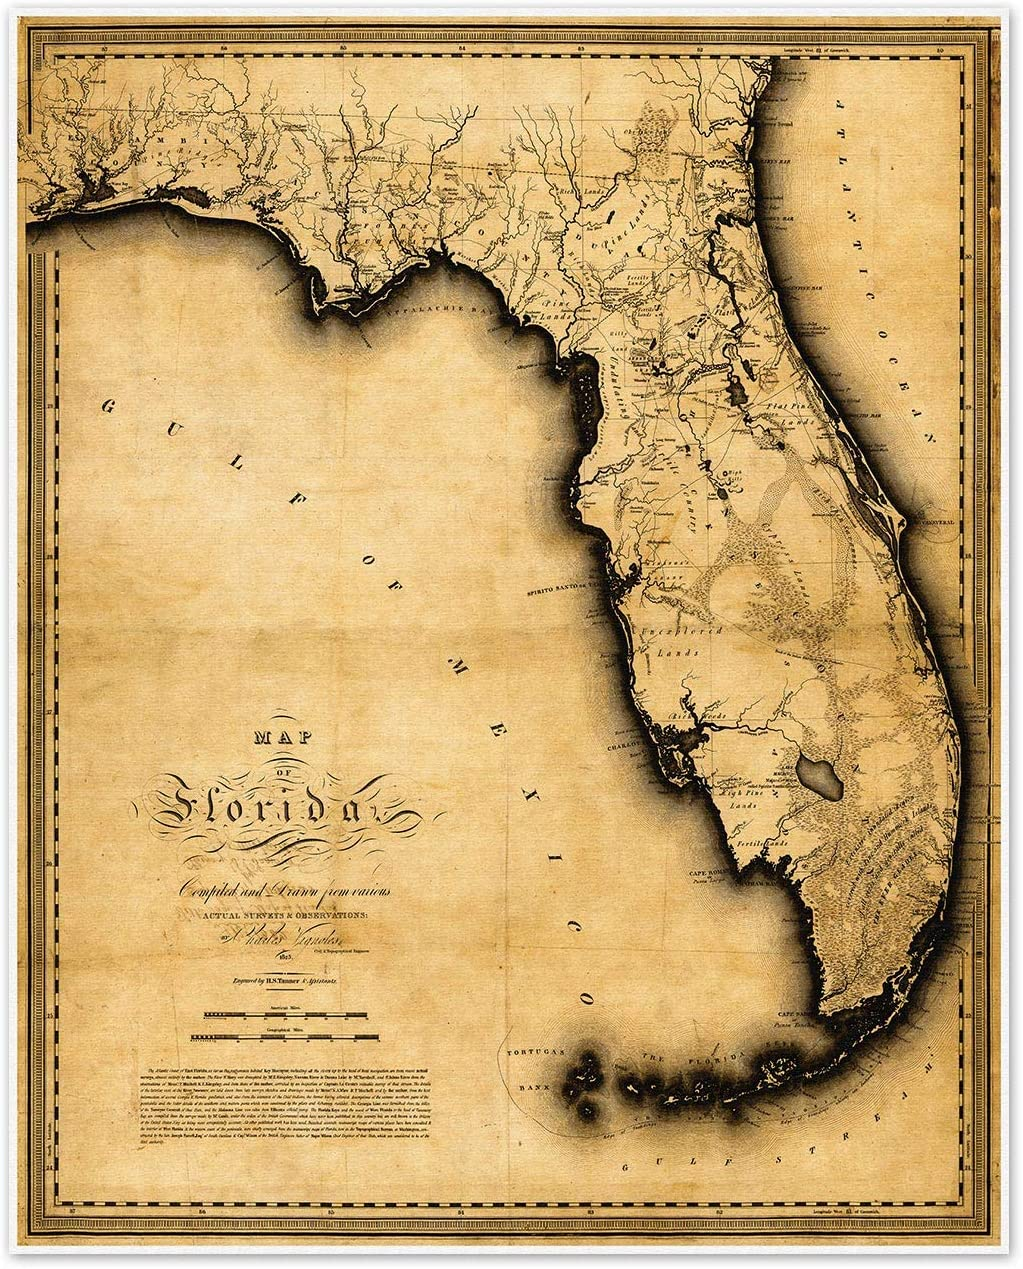 Florida Map by Charles Factory outlet Vignoles Boston Mall circa 1823 24 - inches measures